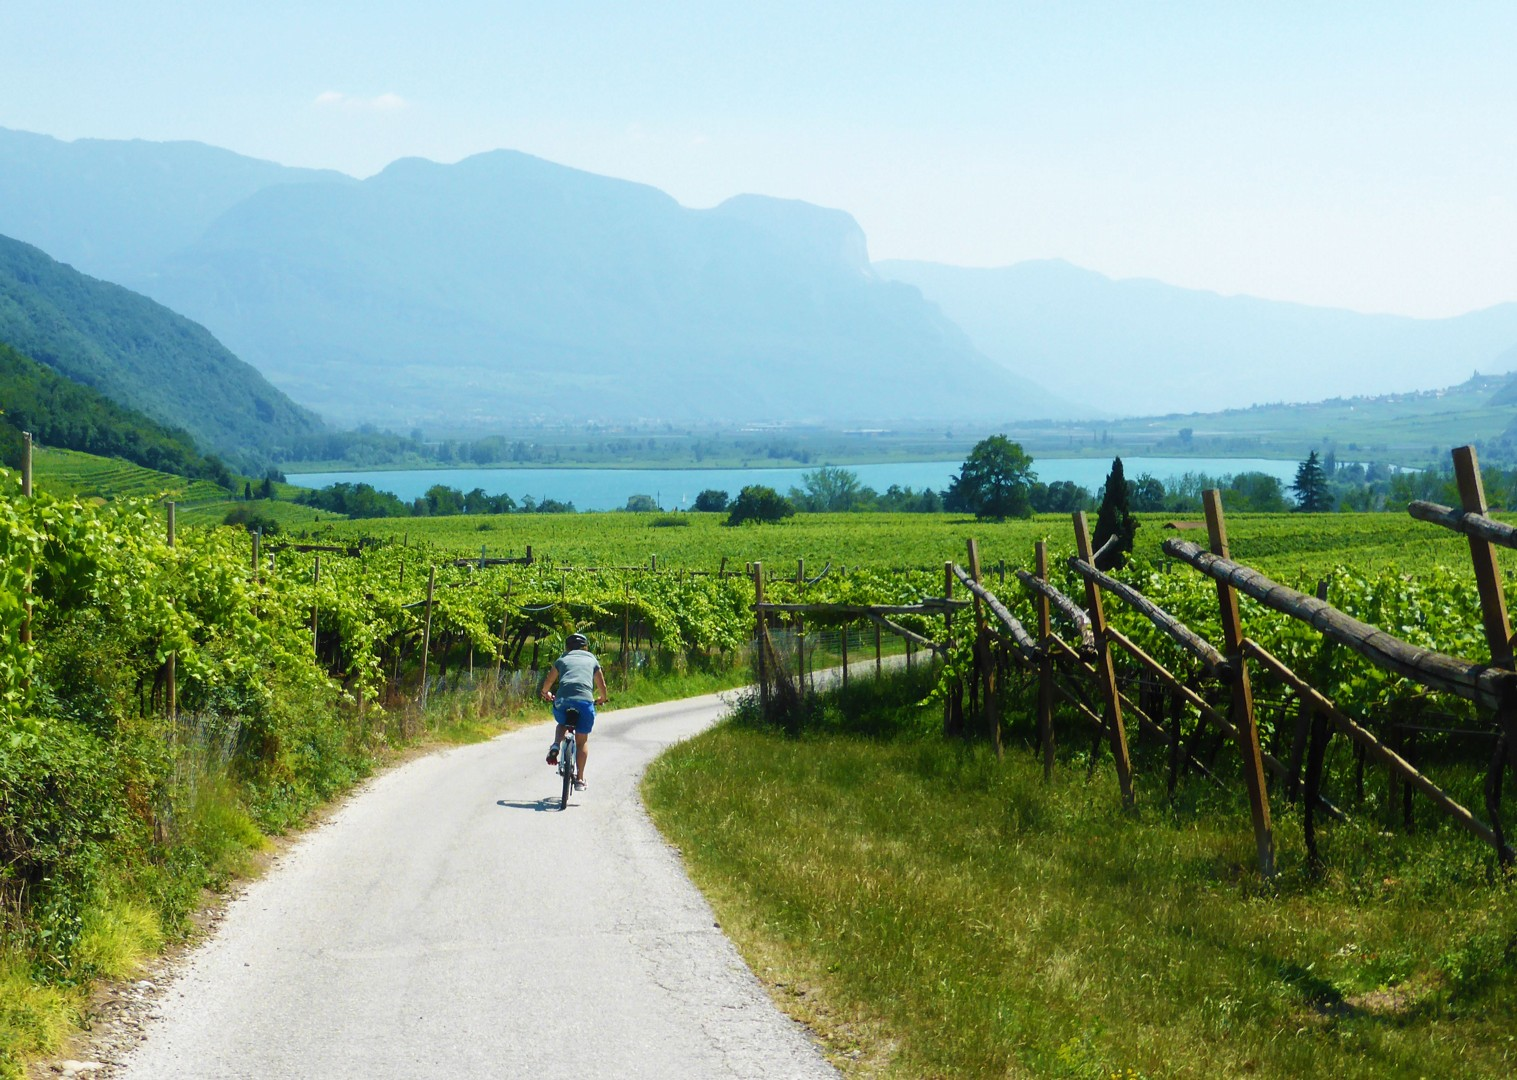 cultural-leisurely-self-guided-cycling-adventure-italy.jpg - Italy - La Via Claudia - Self-Guided Leisure Cycling Holiday - Italia Leisure and Family Cycling